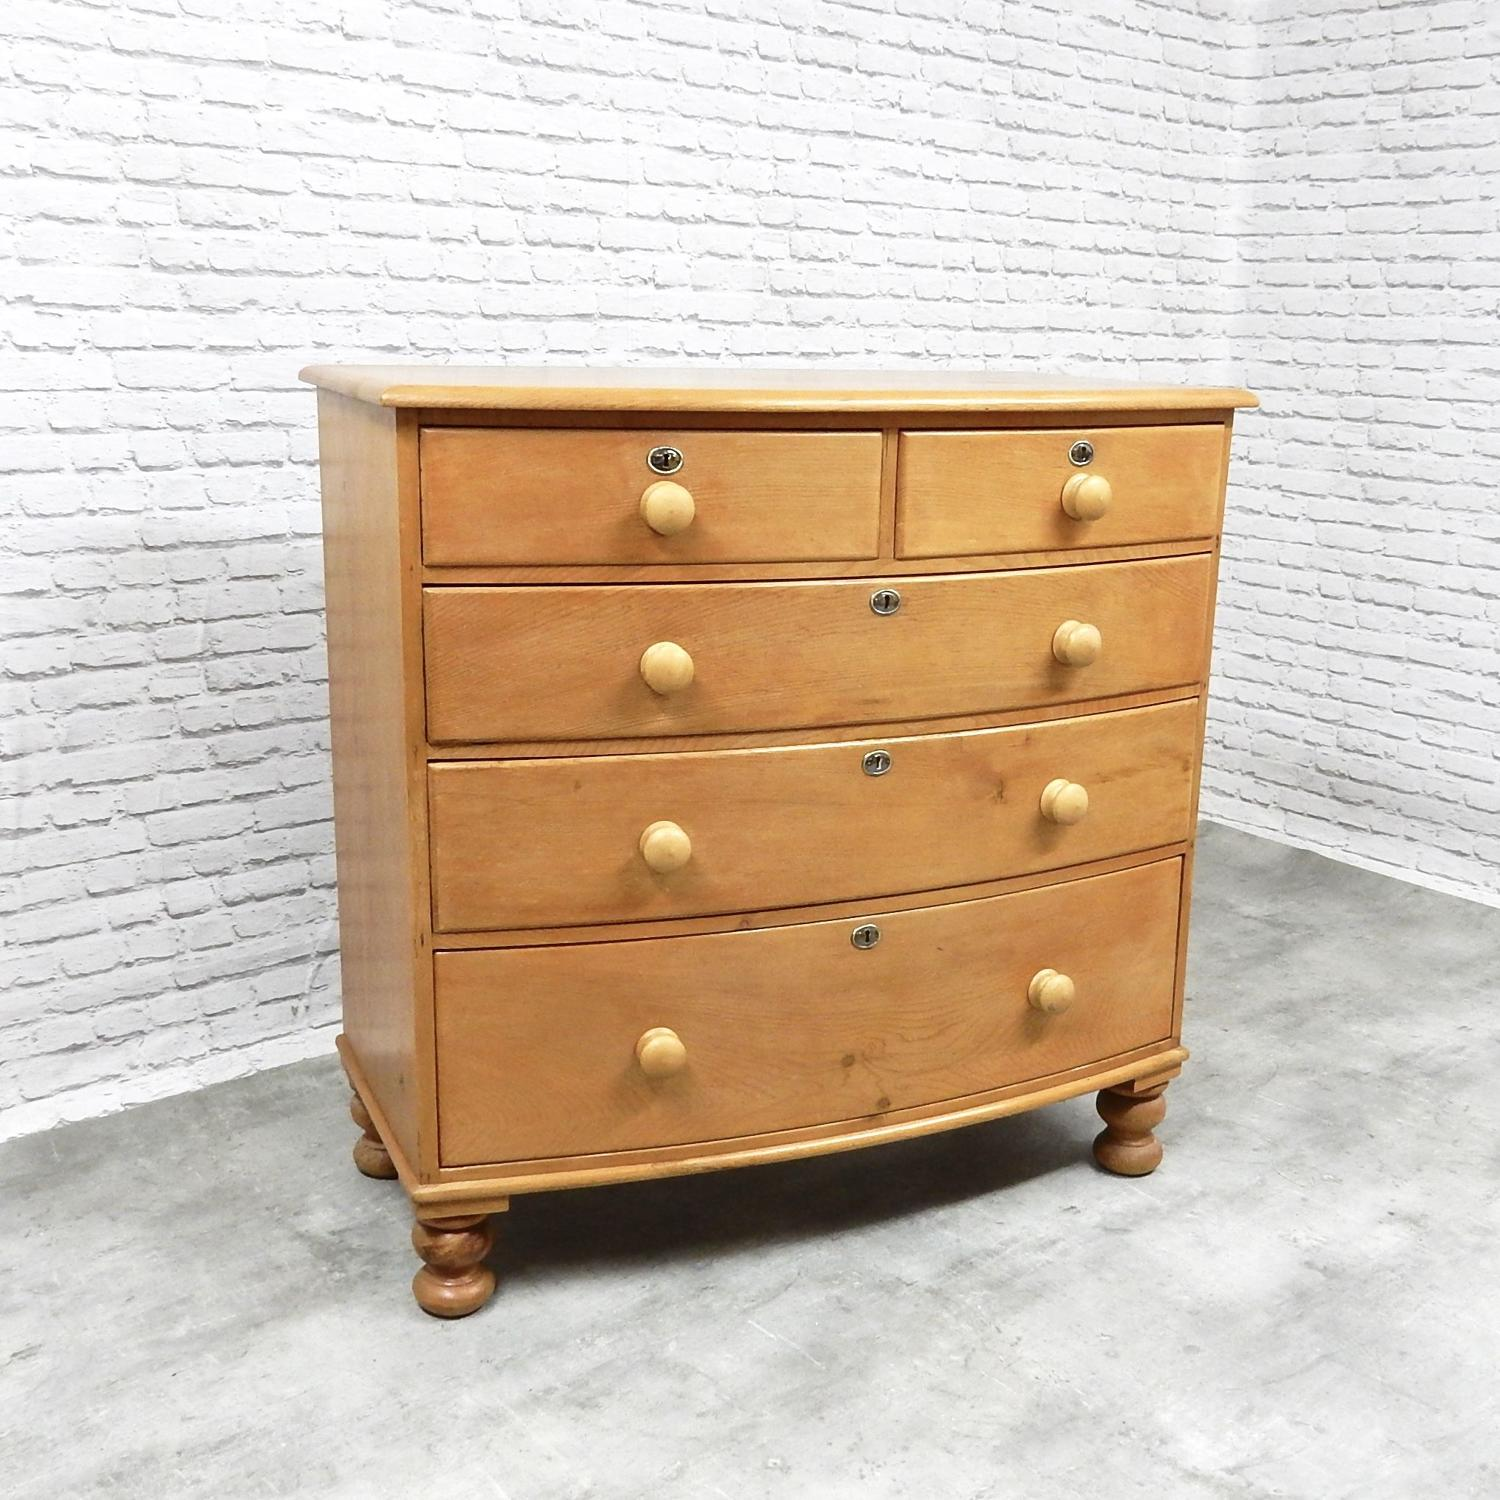 Top quality Pine Chest of Drawers